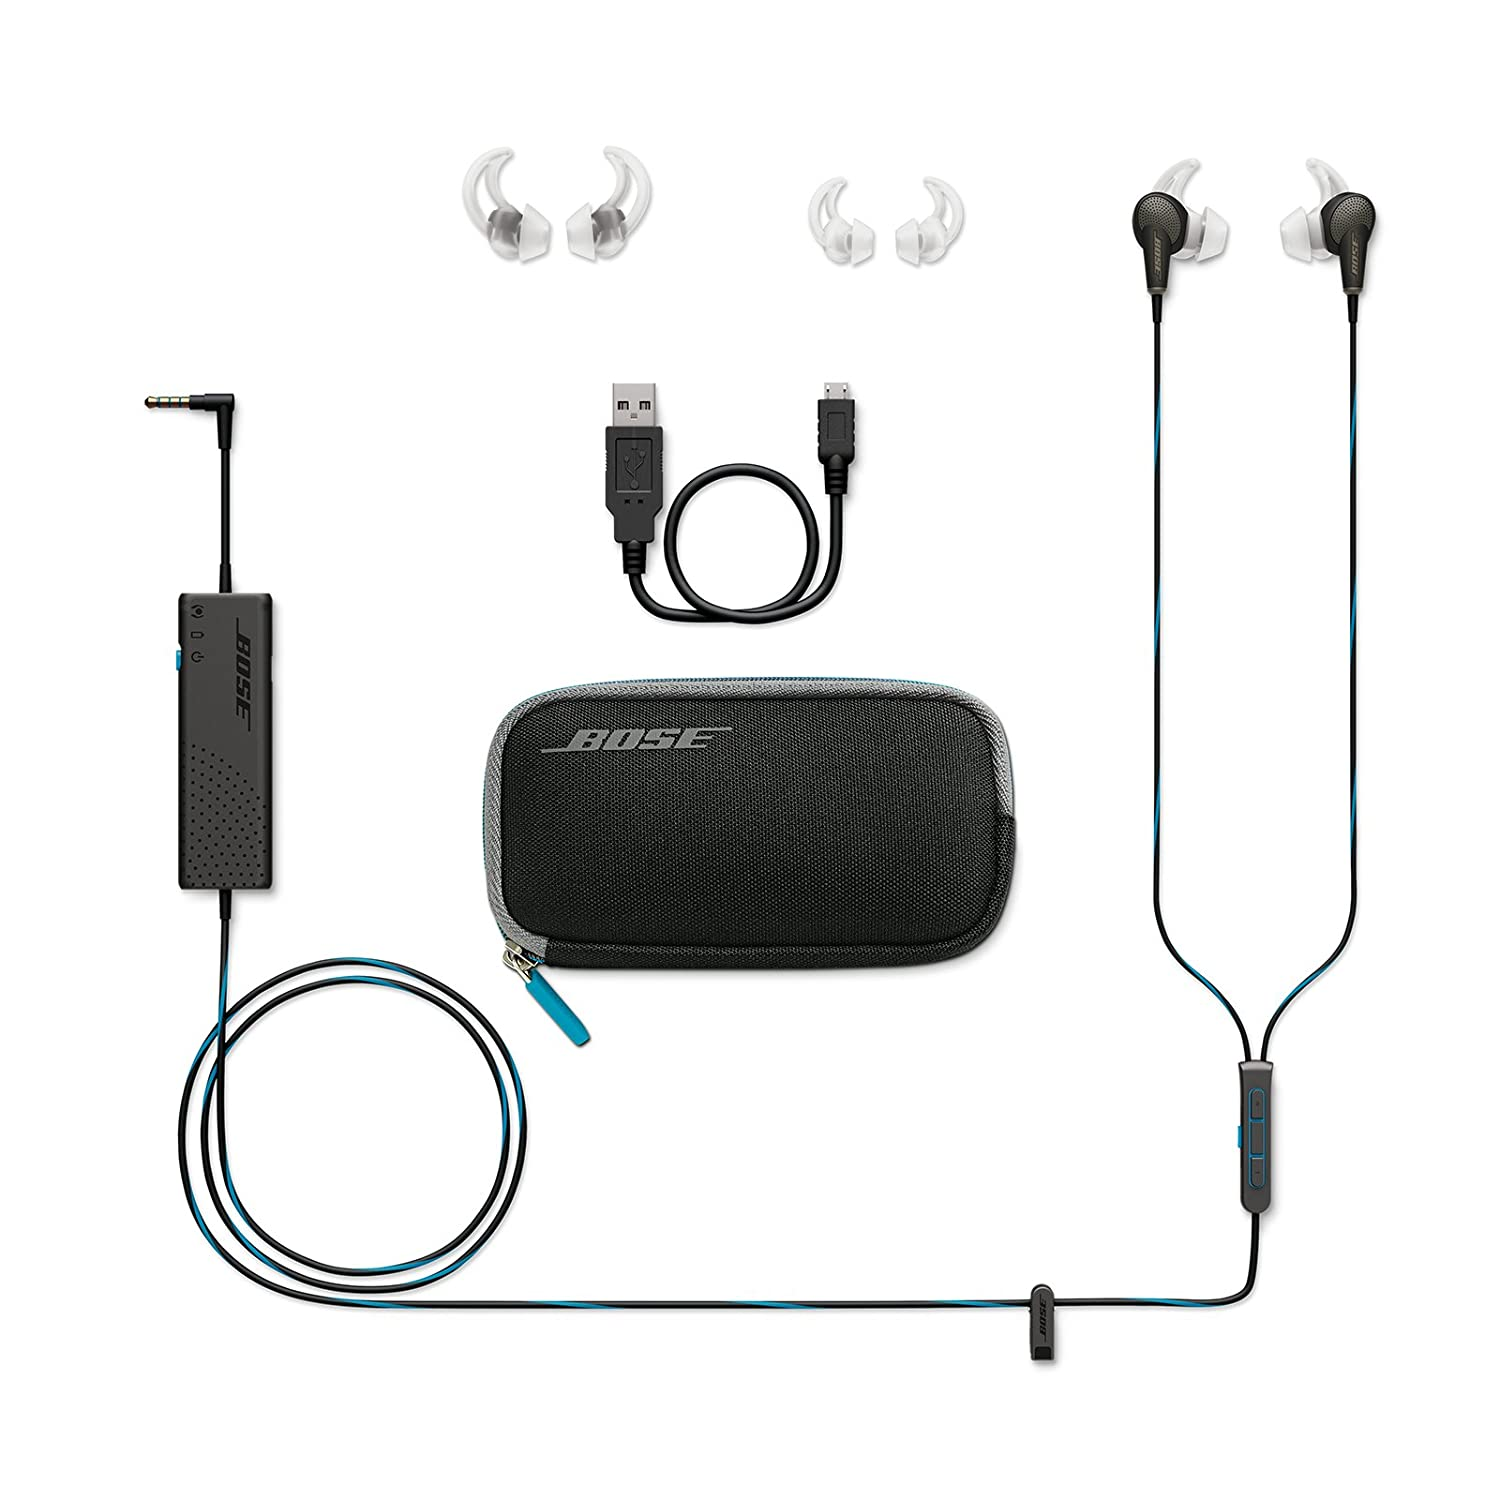 Bose Quietcomfort 20 Acoustic Noise Cancelling Wiring Diagram Building Canceling Headphones Microphone Apple Devices Black Home Audio Theater